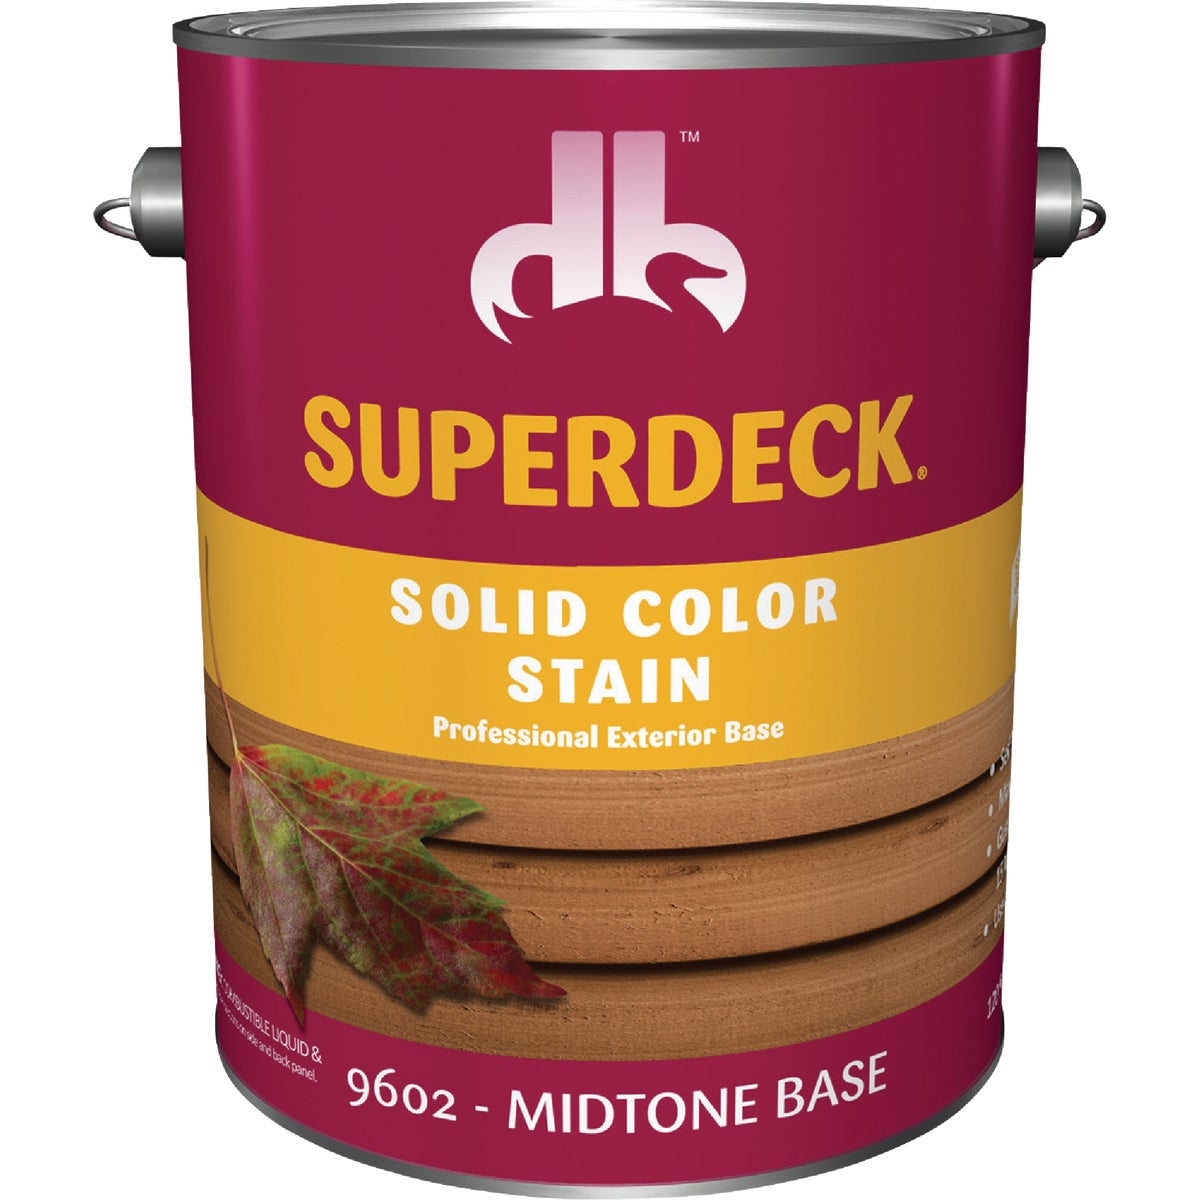 MIDTONE SOLID DECK STAIN - DB9602-4 by Duckback Prod